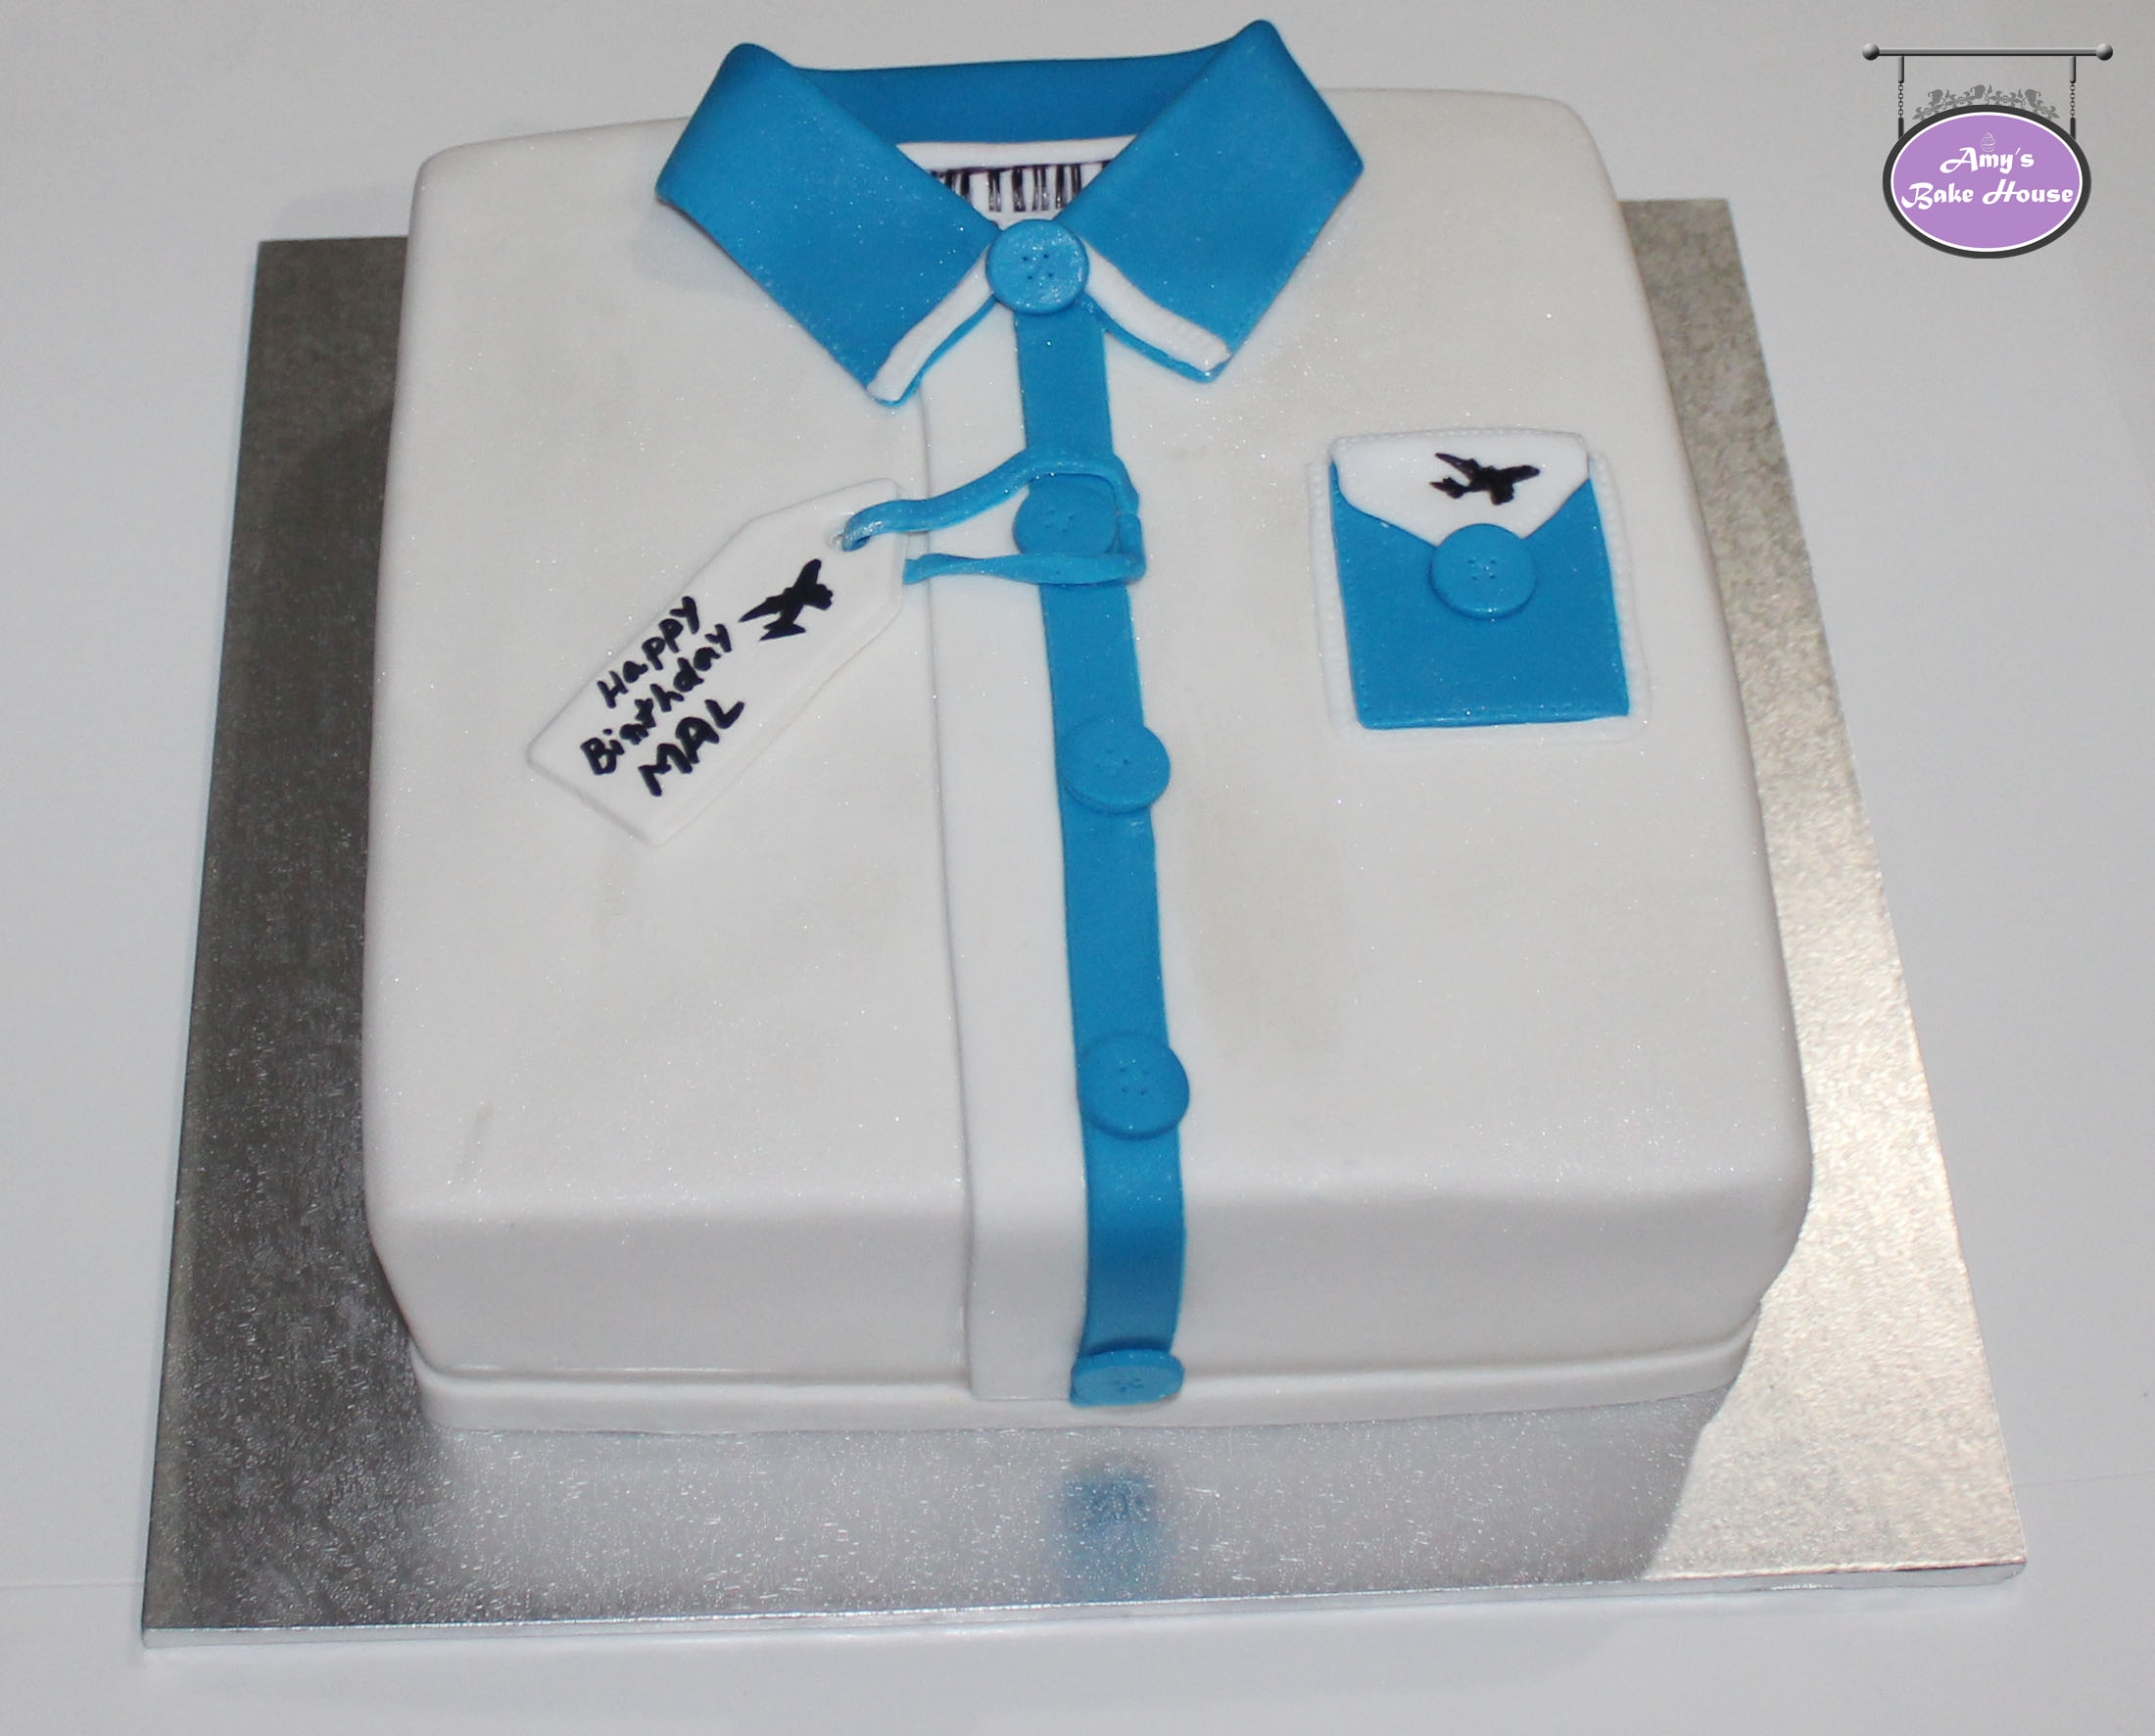 Shirt Birthday Cake Amys Bake House